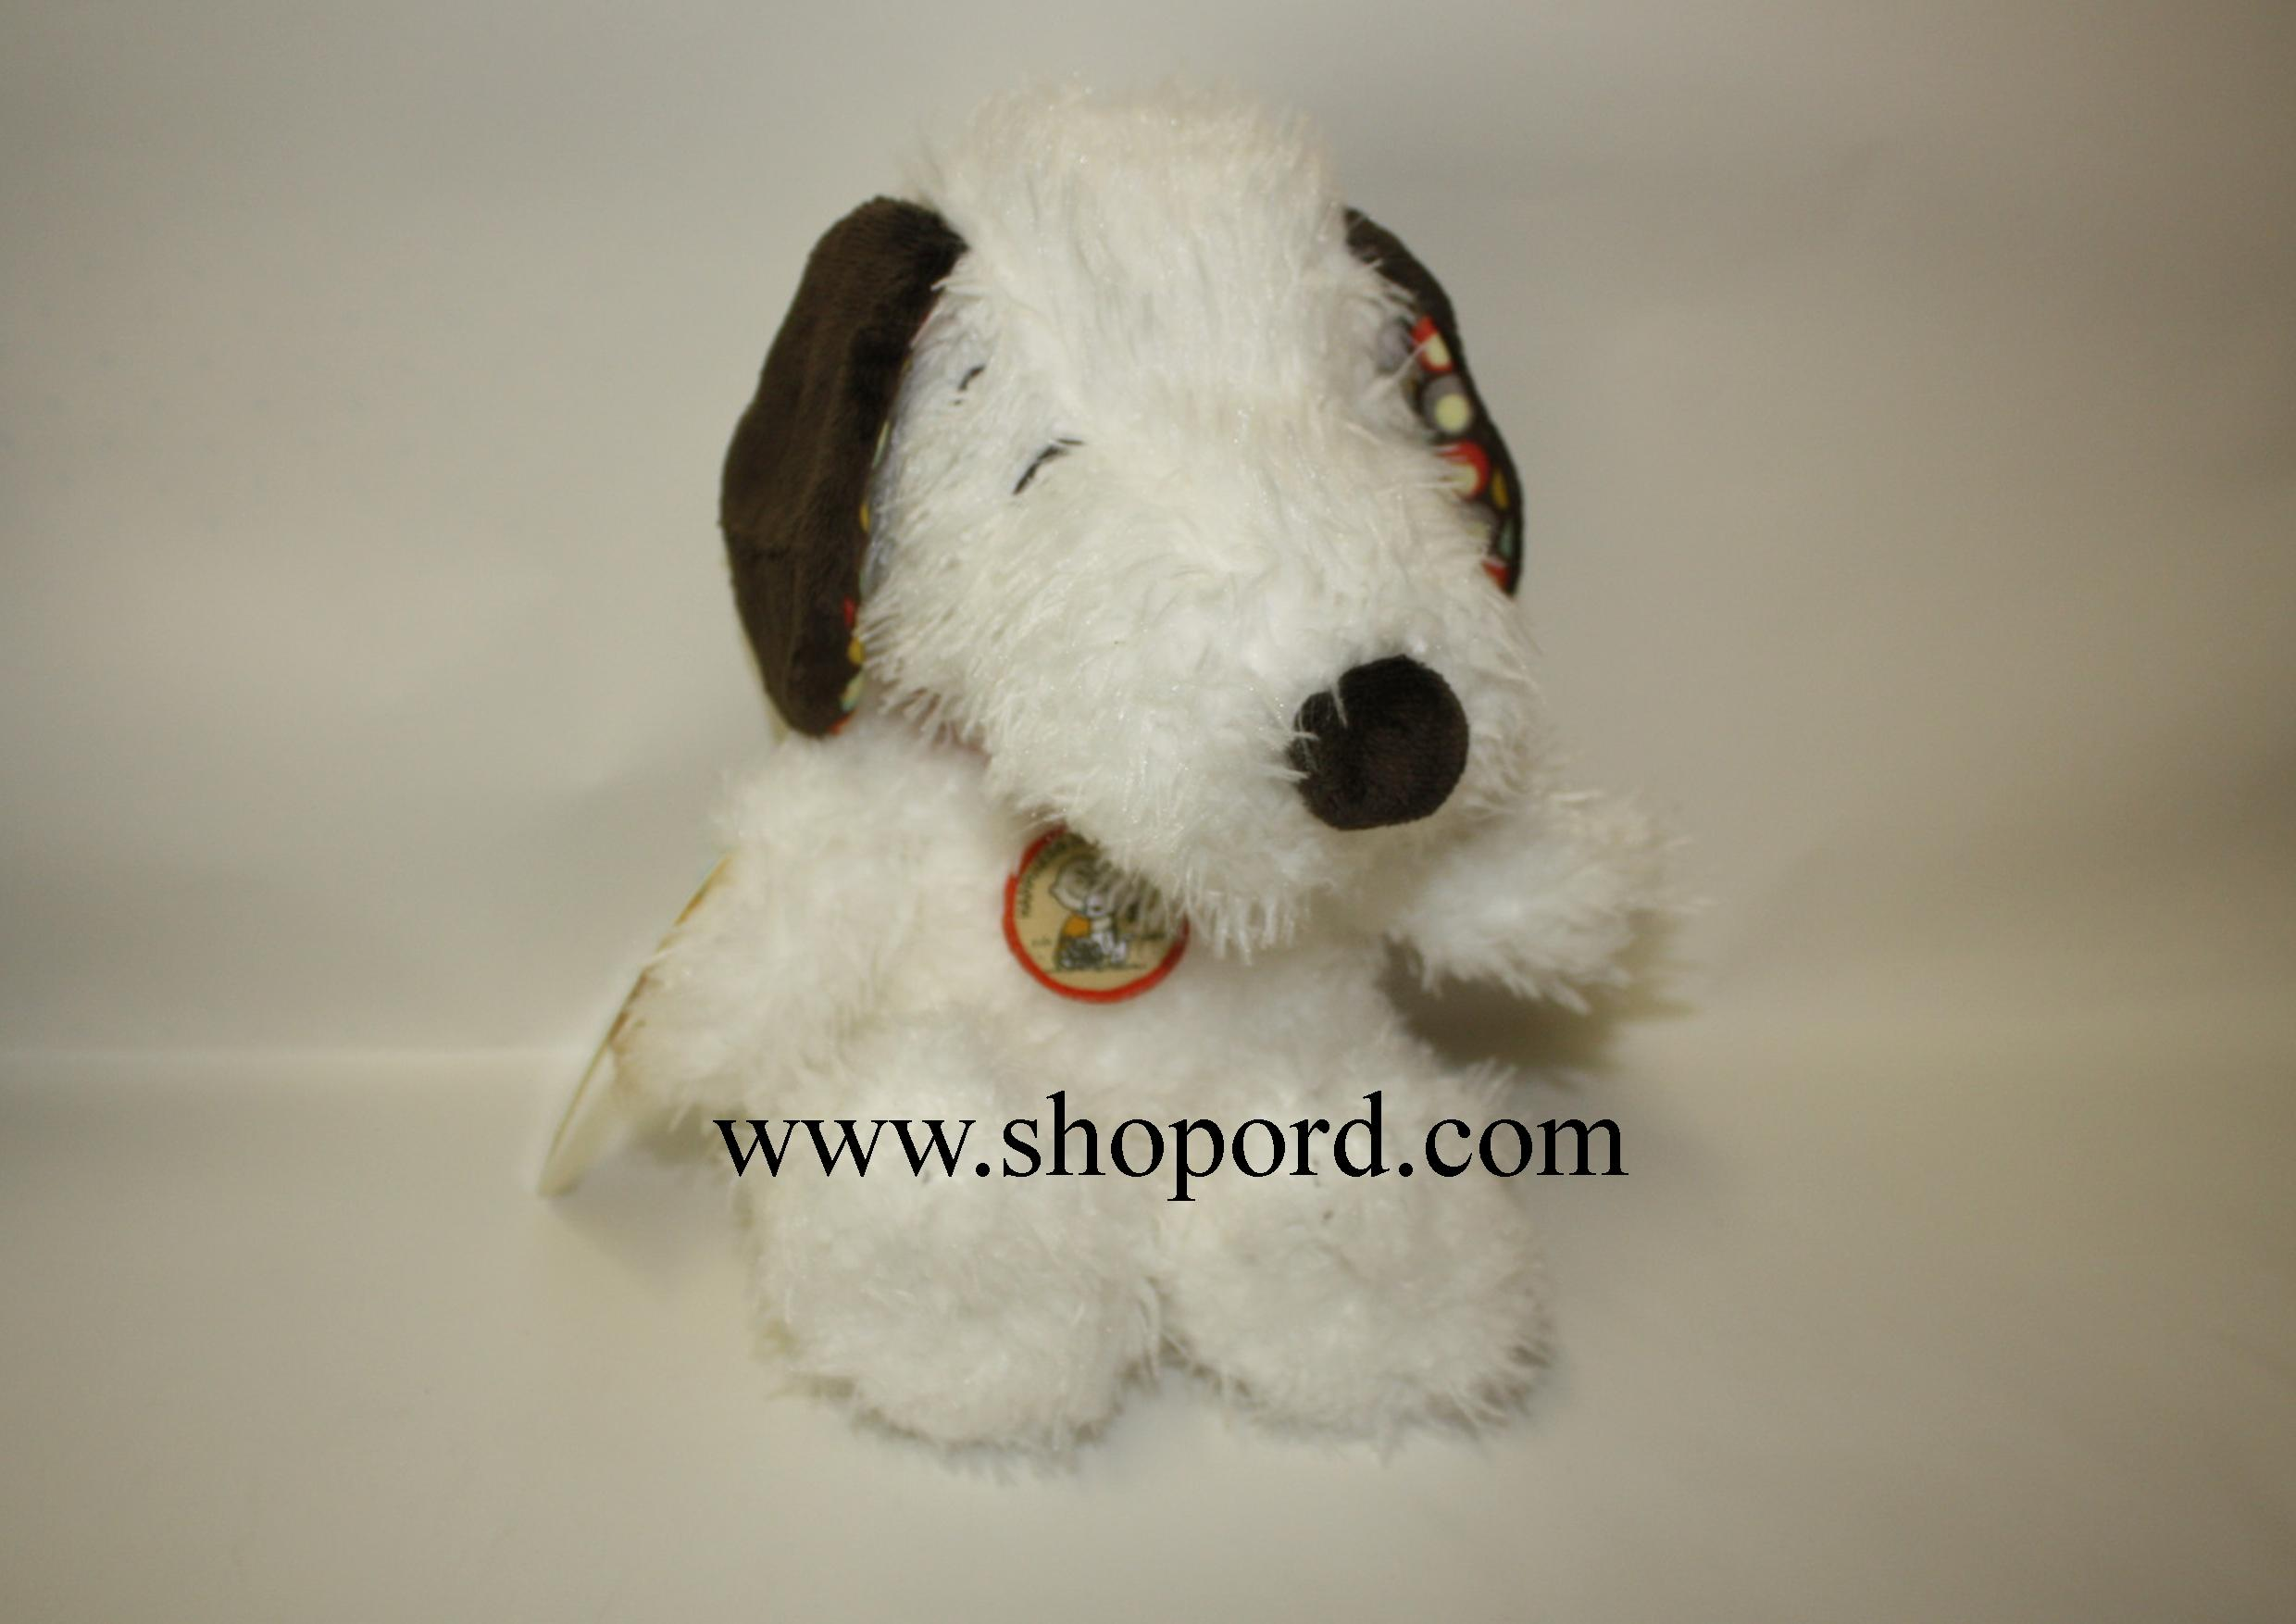 Hallmark Peanut Gang Snoopy Plush Happiness Is A Warm Puppy PAJ1114